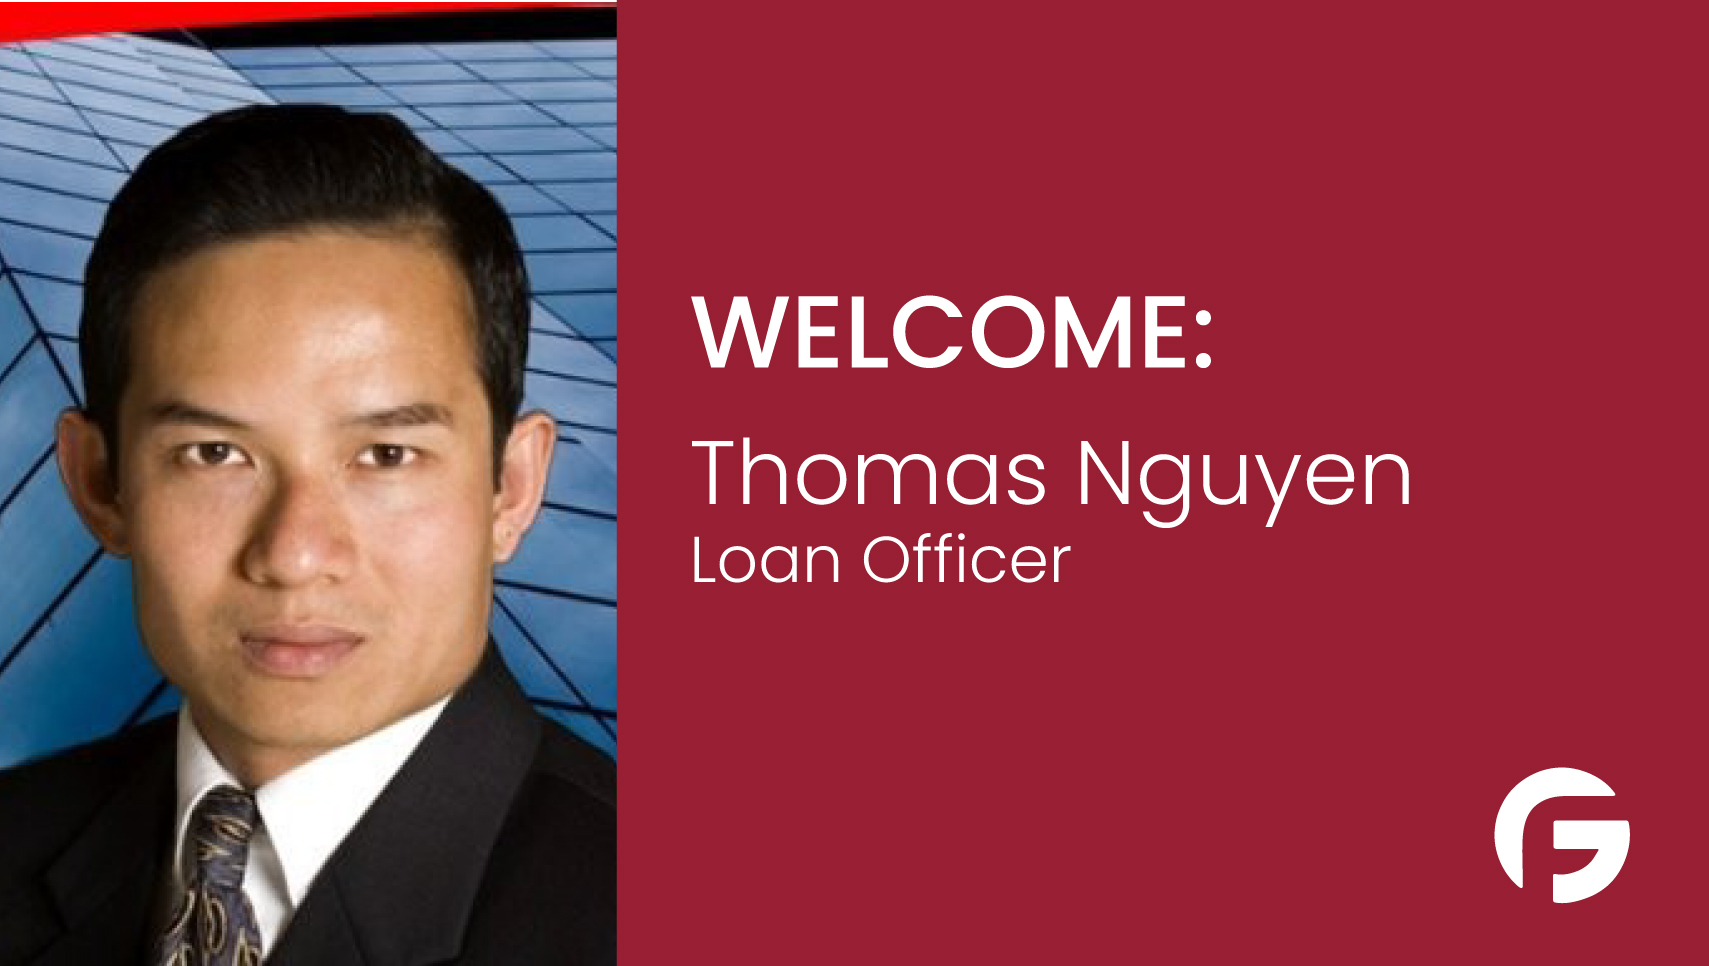 Thomas Nguyen, Loan Officer, serving the state of Minnesota